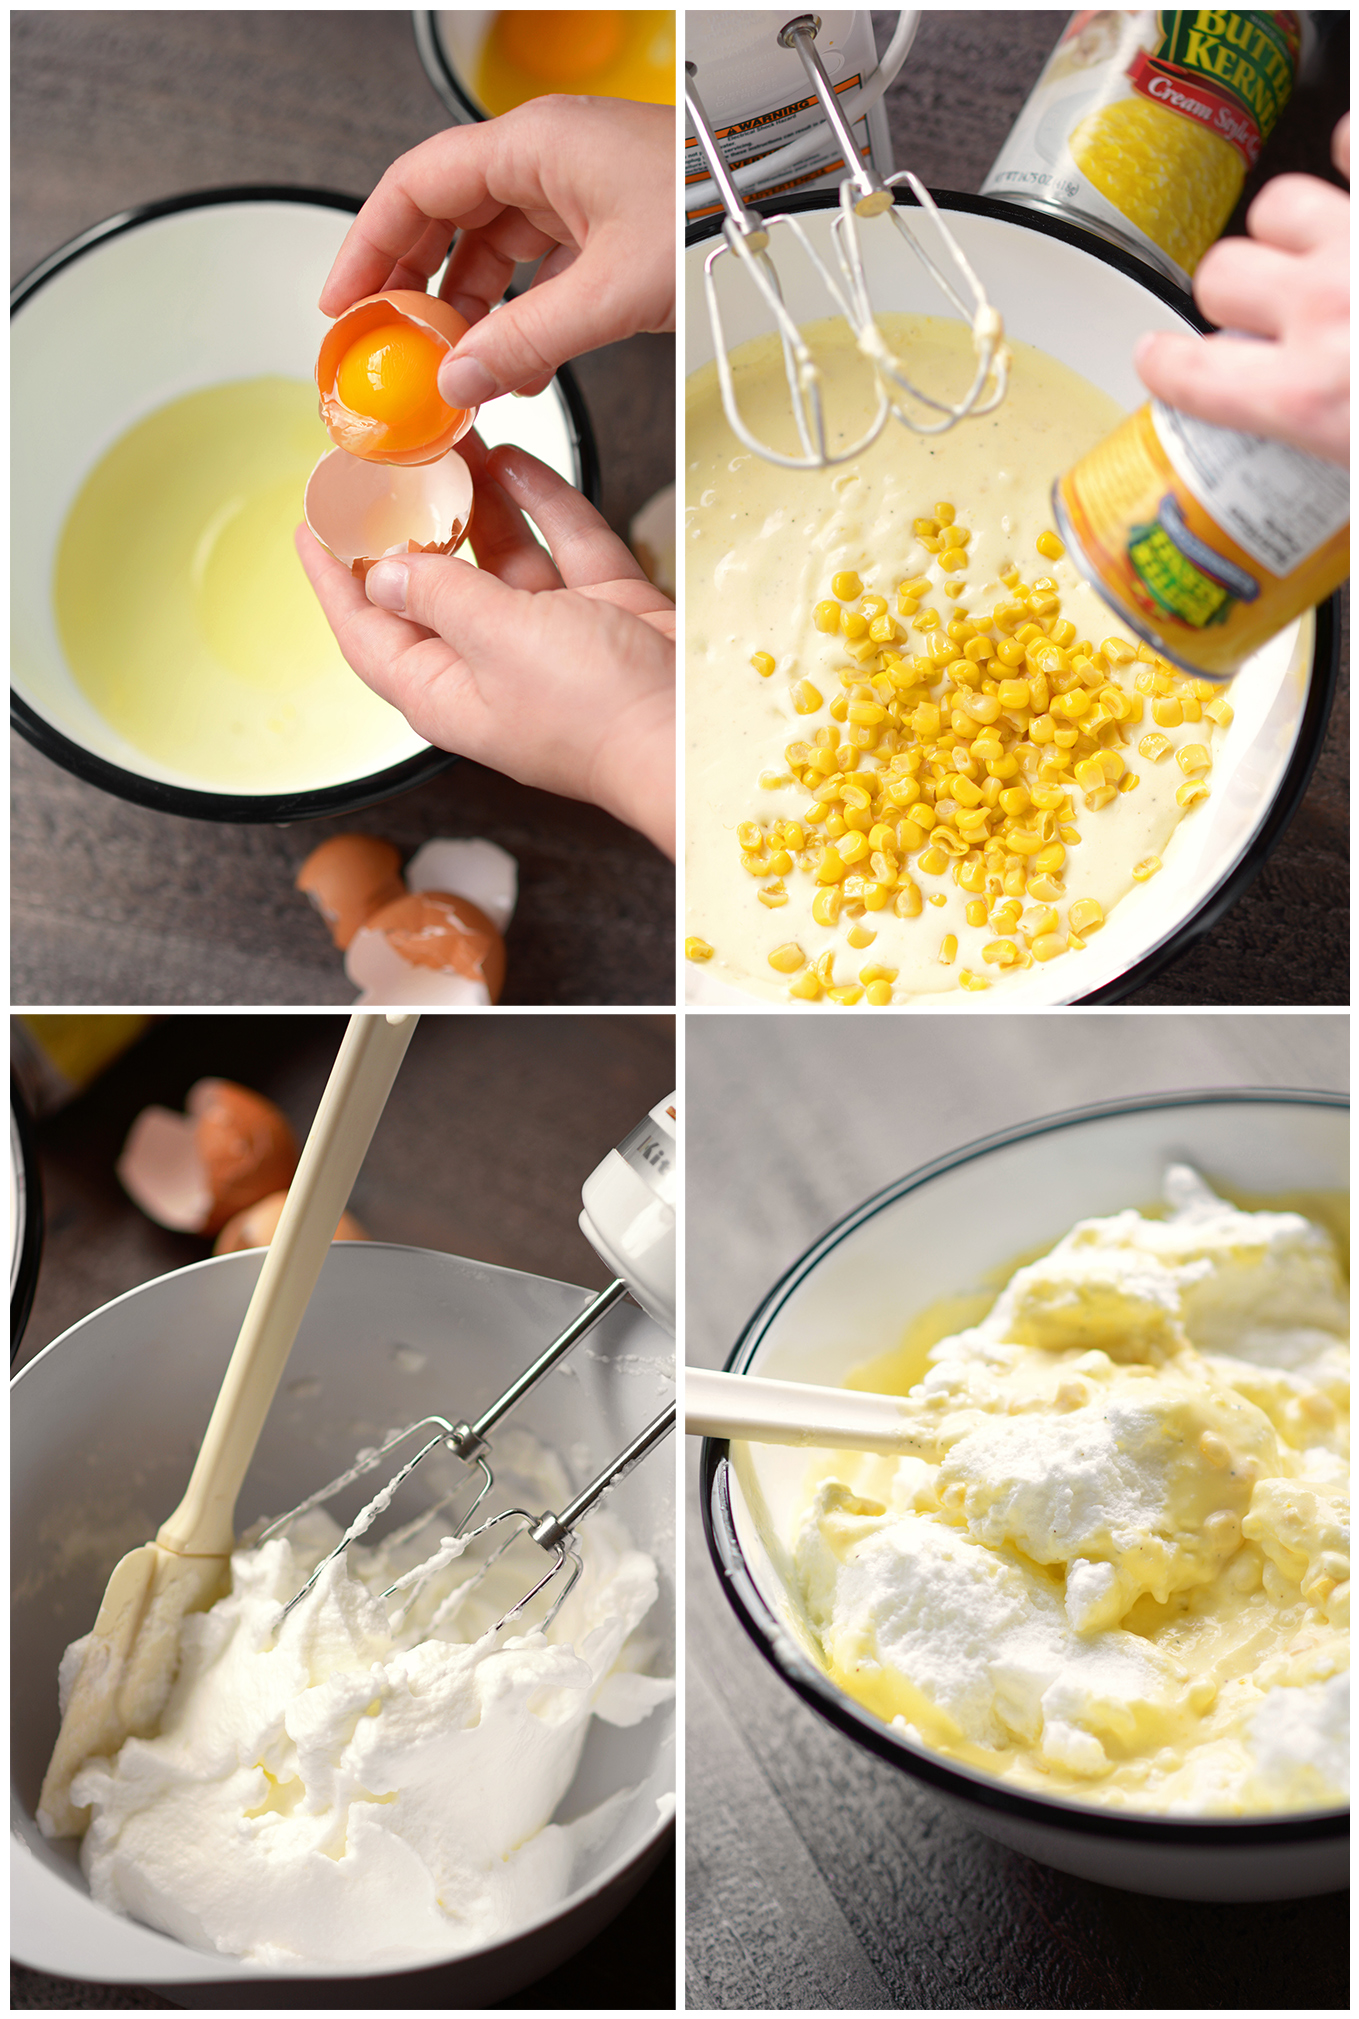 How to Make Baked Corn Pudding